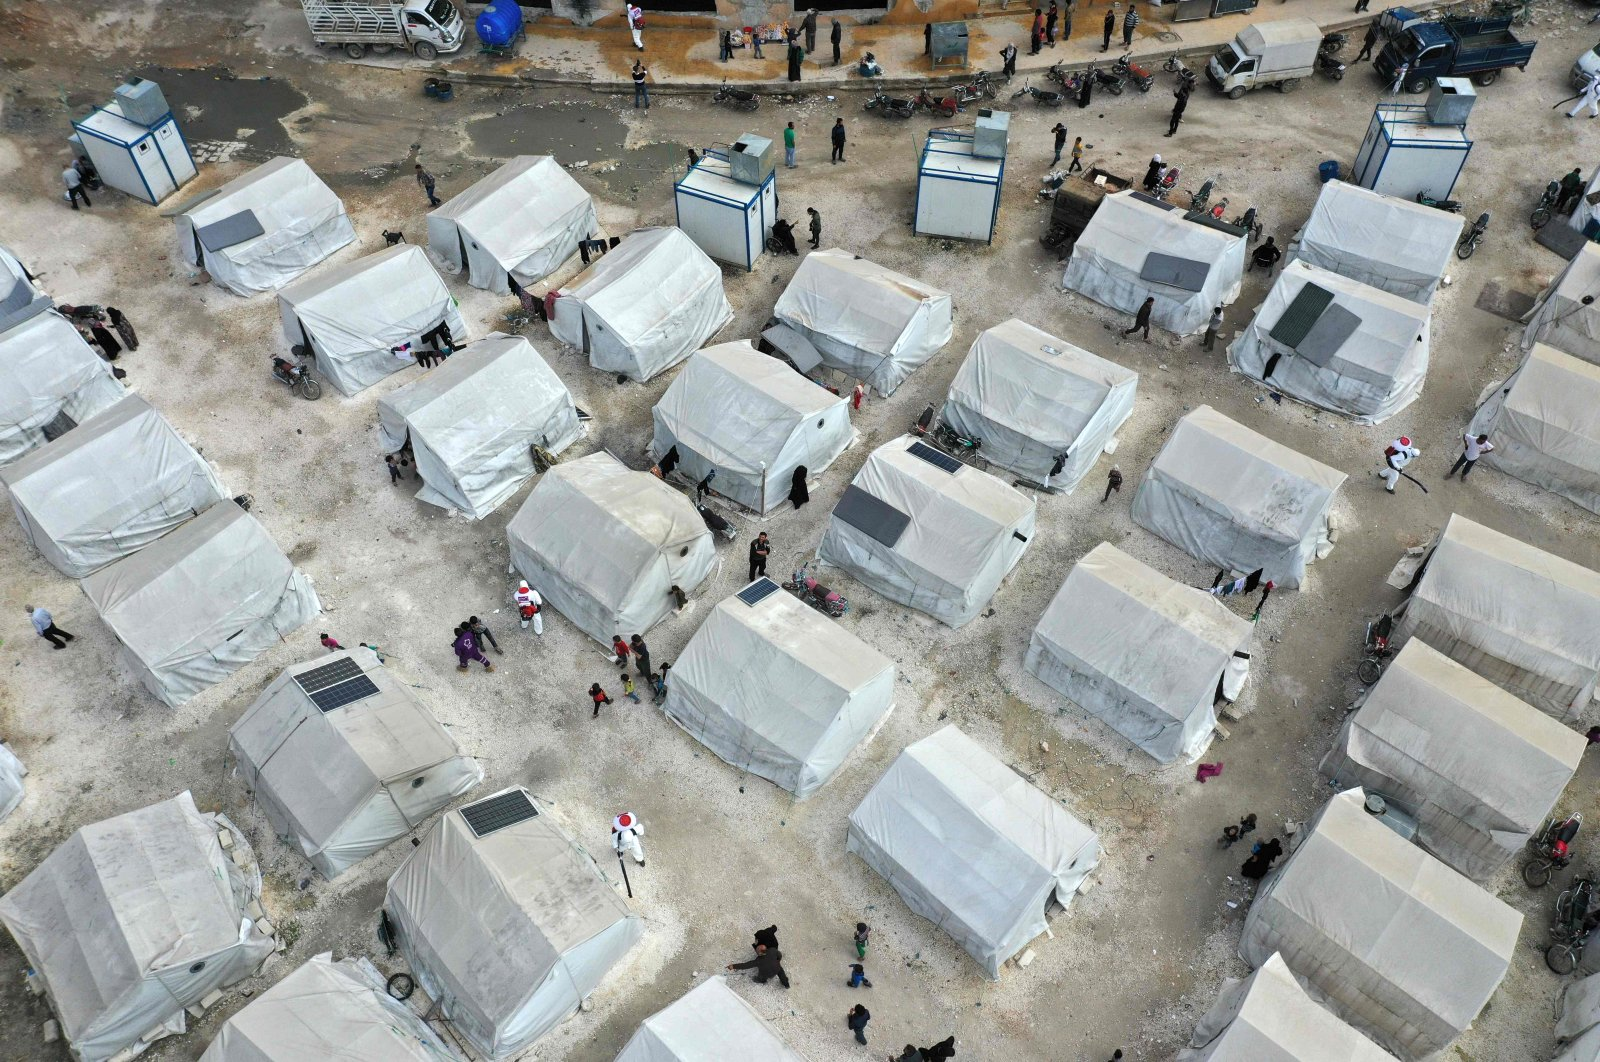 A drone image taken on April 9, 2020, shows sanitation workers disinfecting a camp for displaced Syrians next to the Idlib municipal stadium in the northwestern Syrian city, during a campaign to limit the spread of the coronavirus pandemic. (AFP Photo)